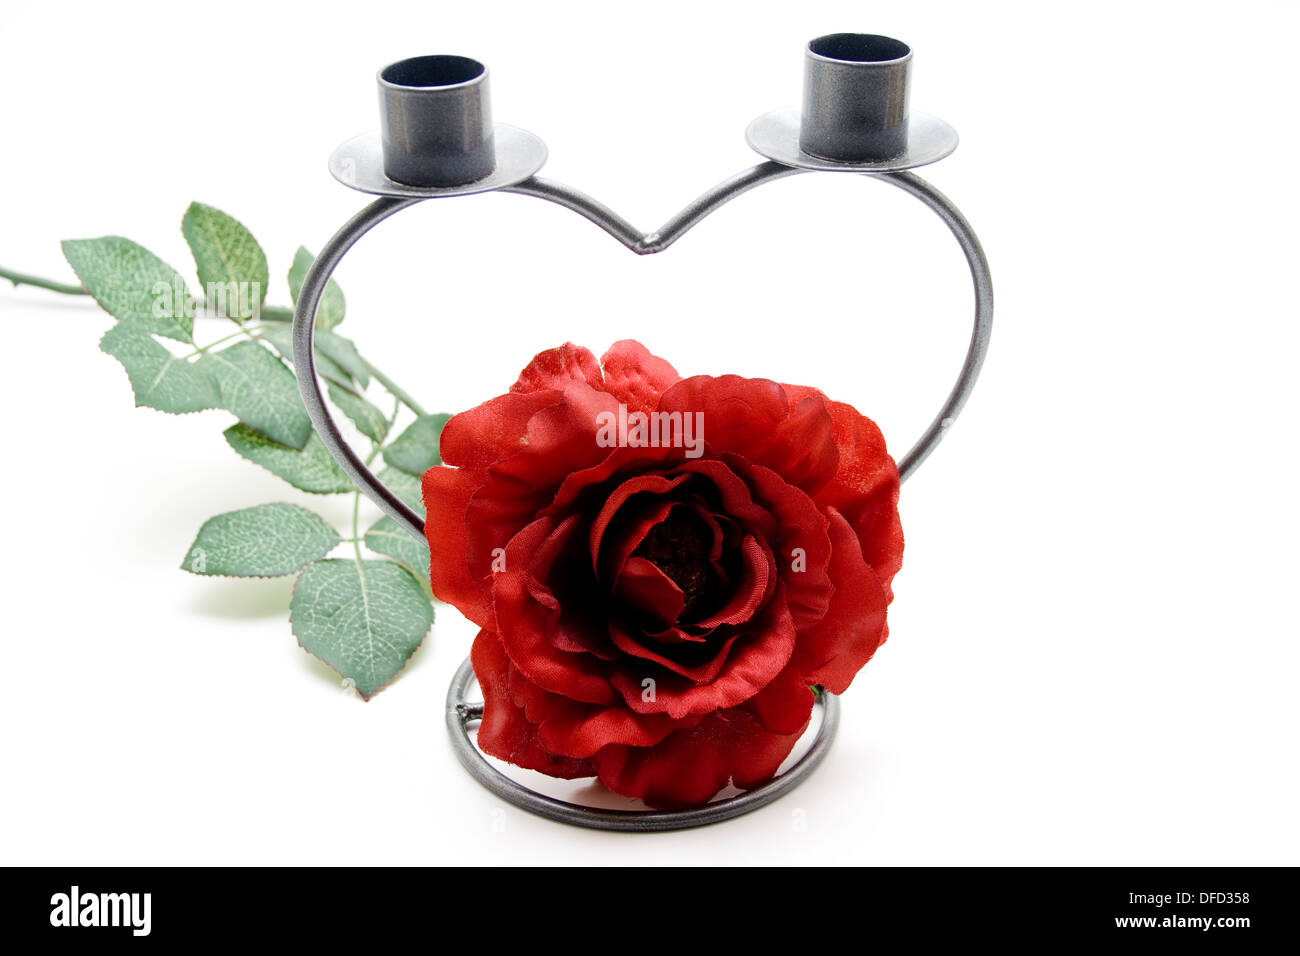 Rose with candle holders - Stock Image